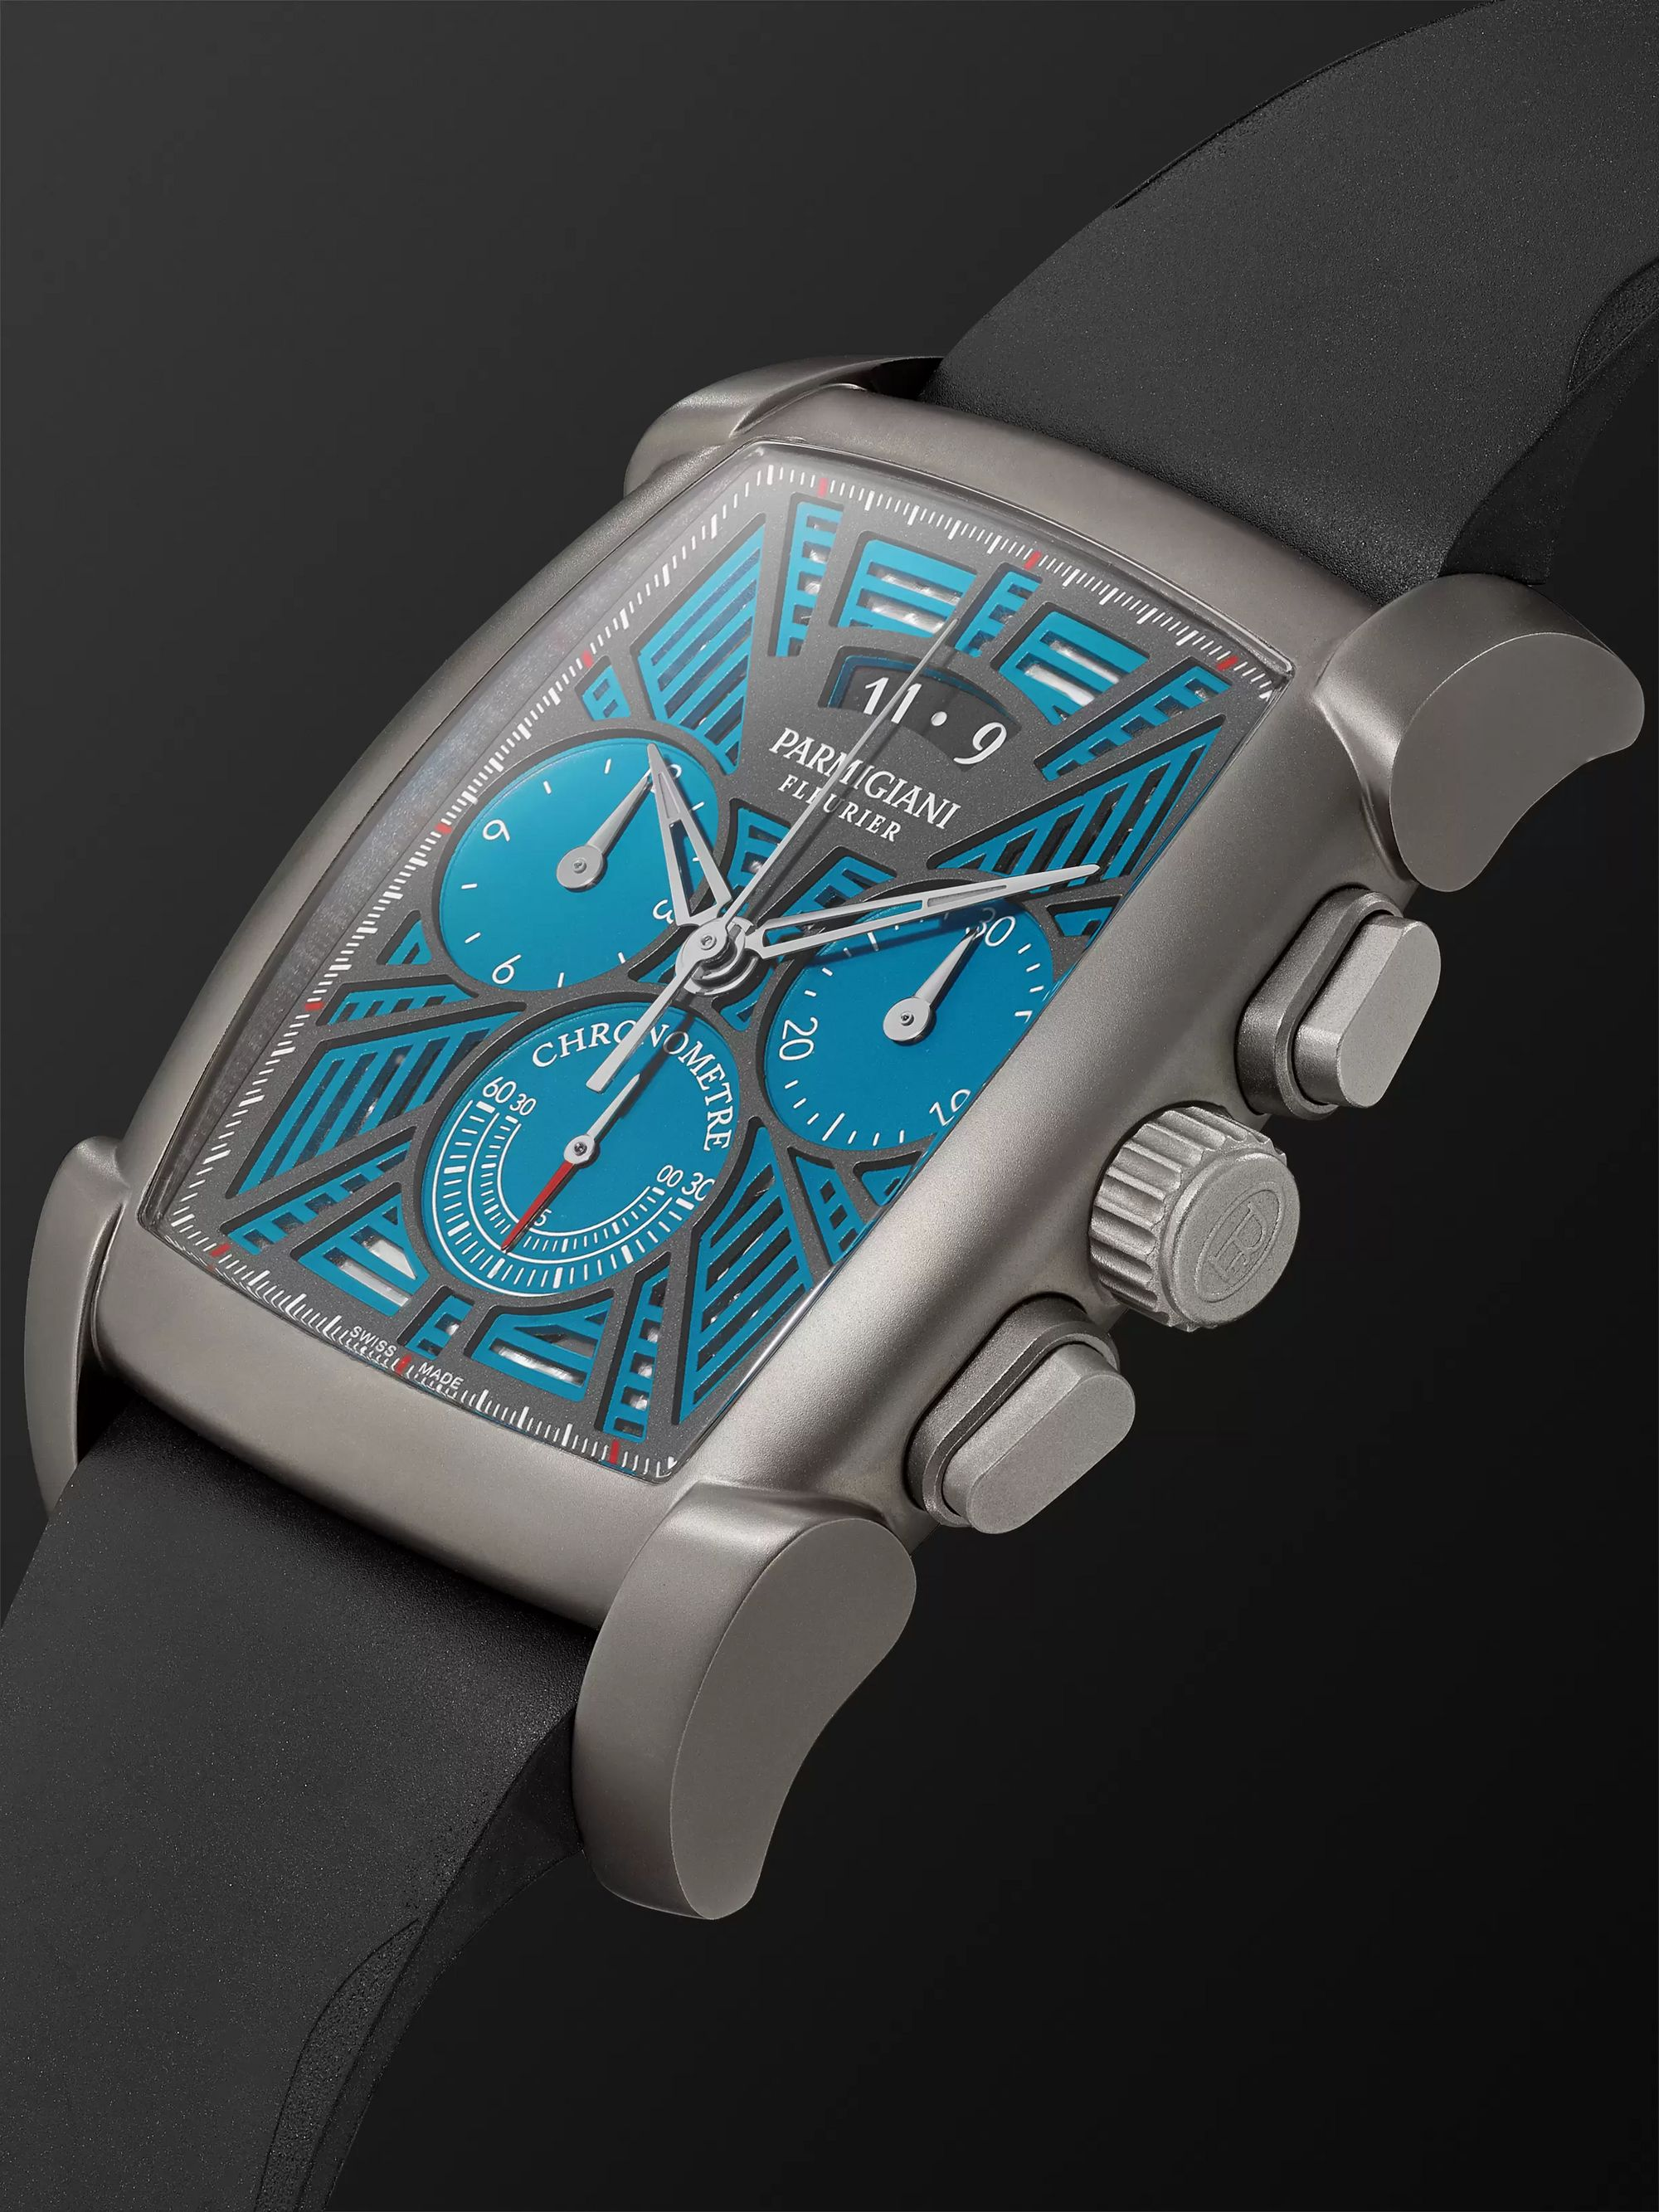 Parmigiani Fleurier Kalpagraphe Limited Edition Chronograph 48mm Titanium and Rubber Watch